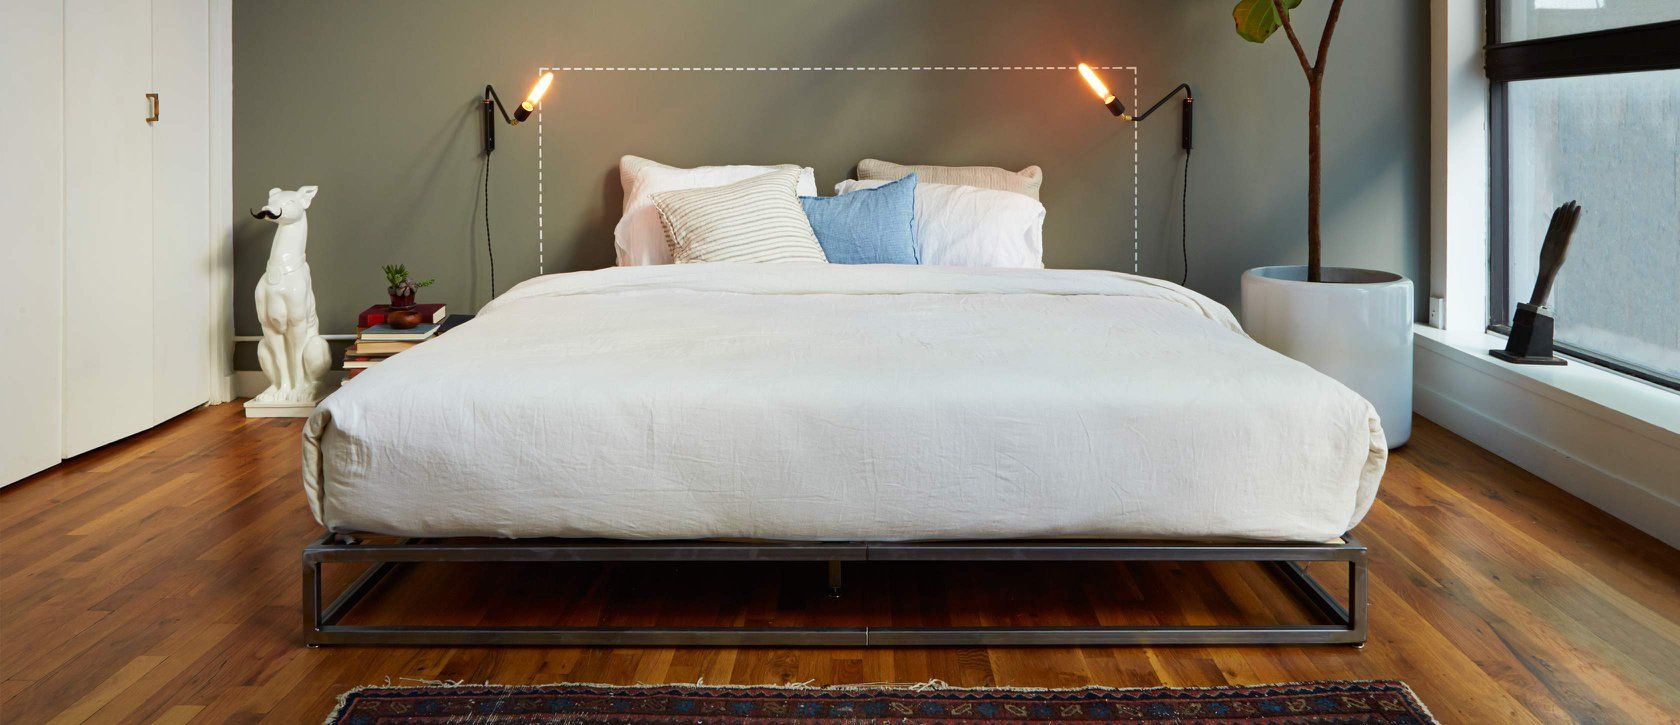 Shop the Mattress, with Free Delivery & Returns Casper